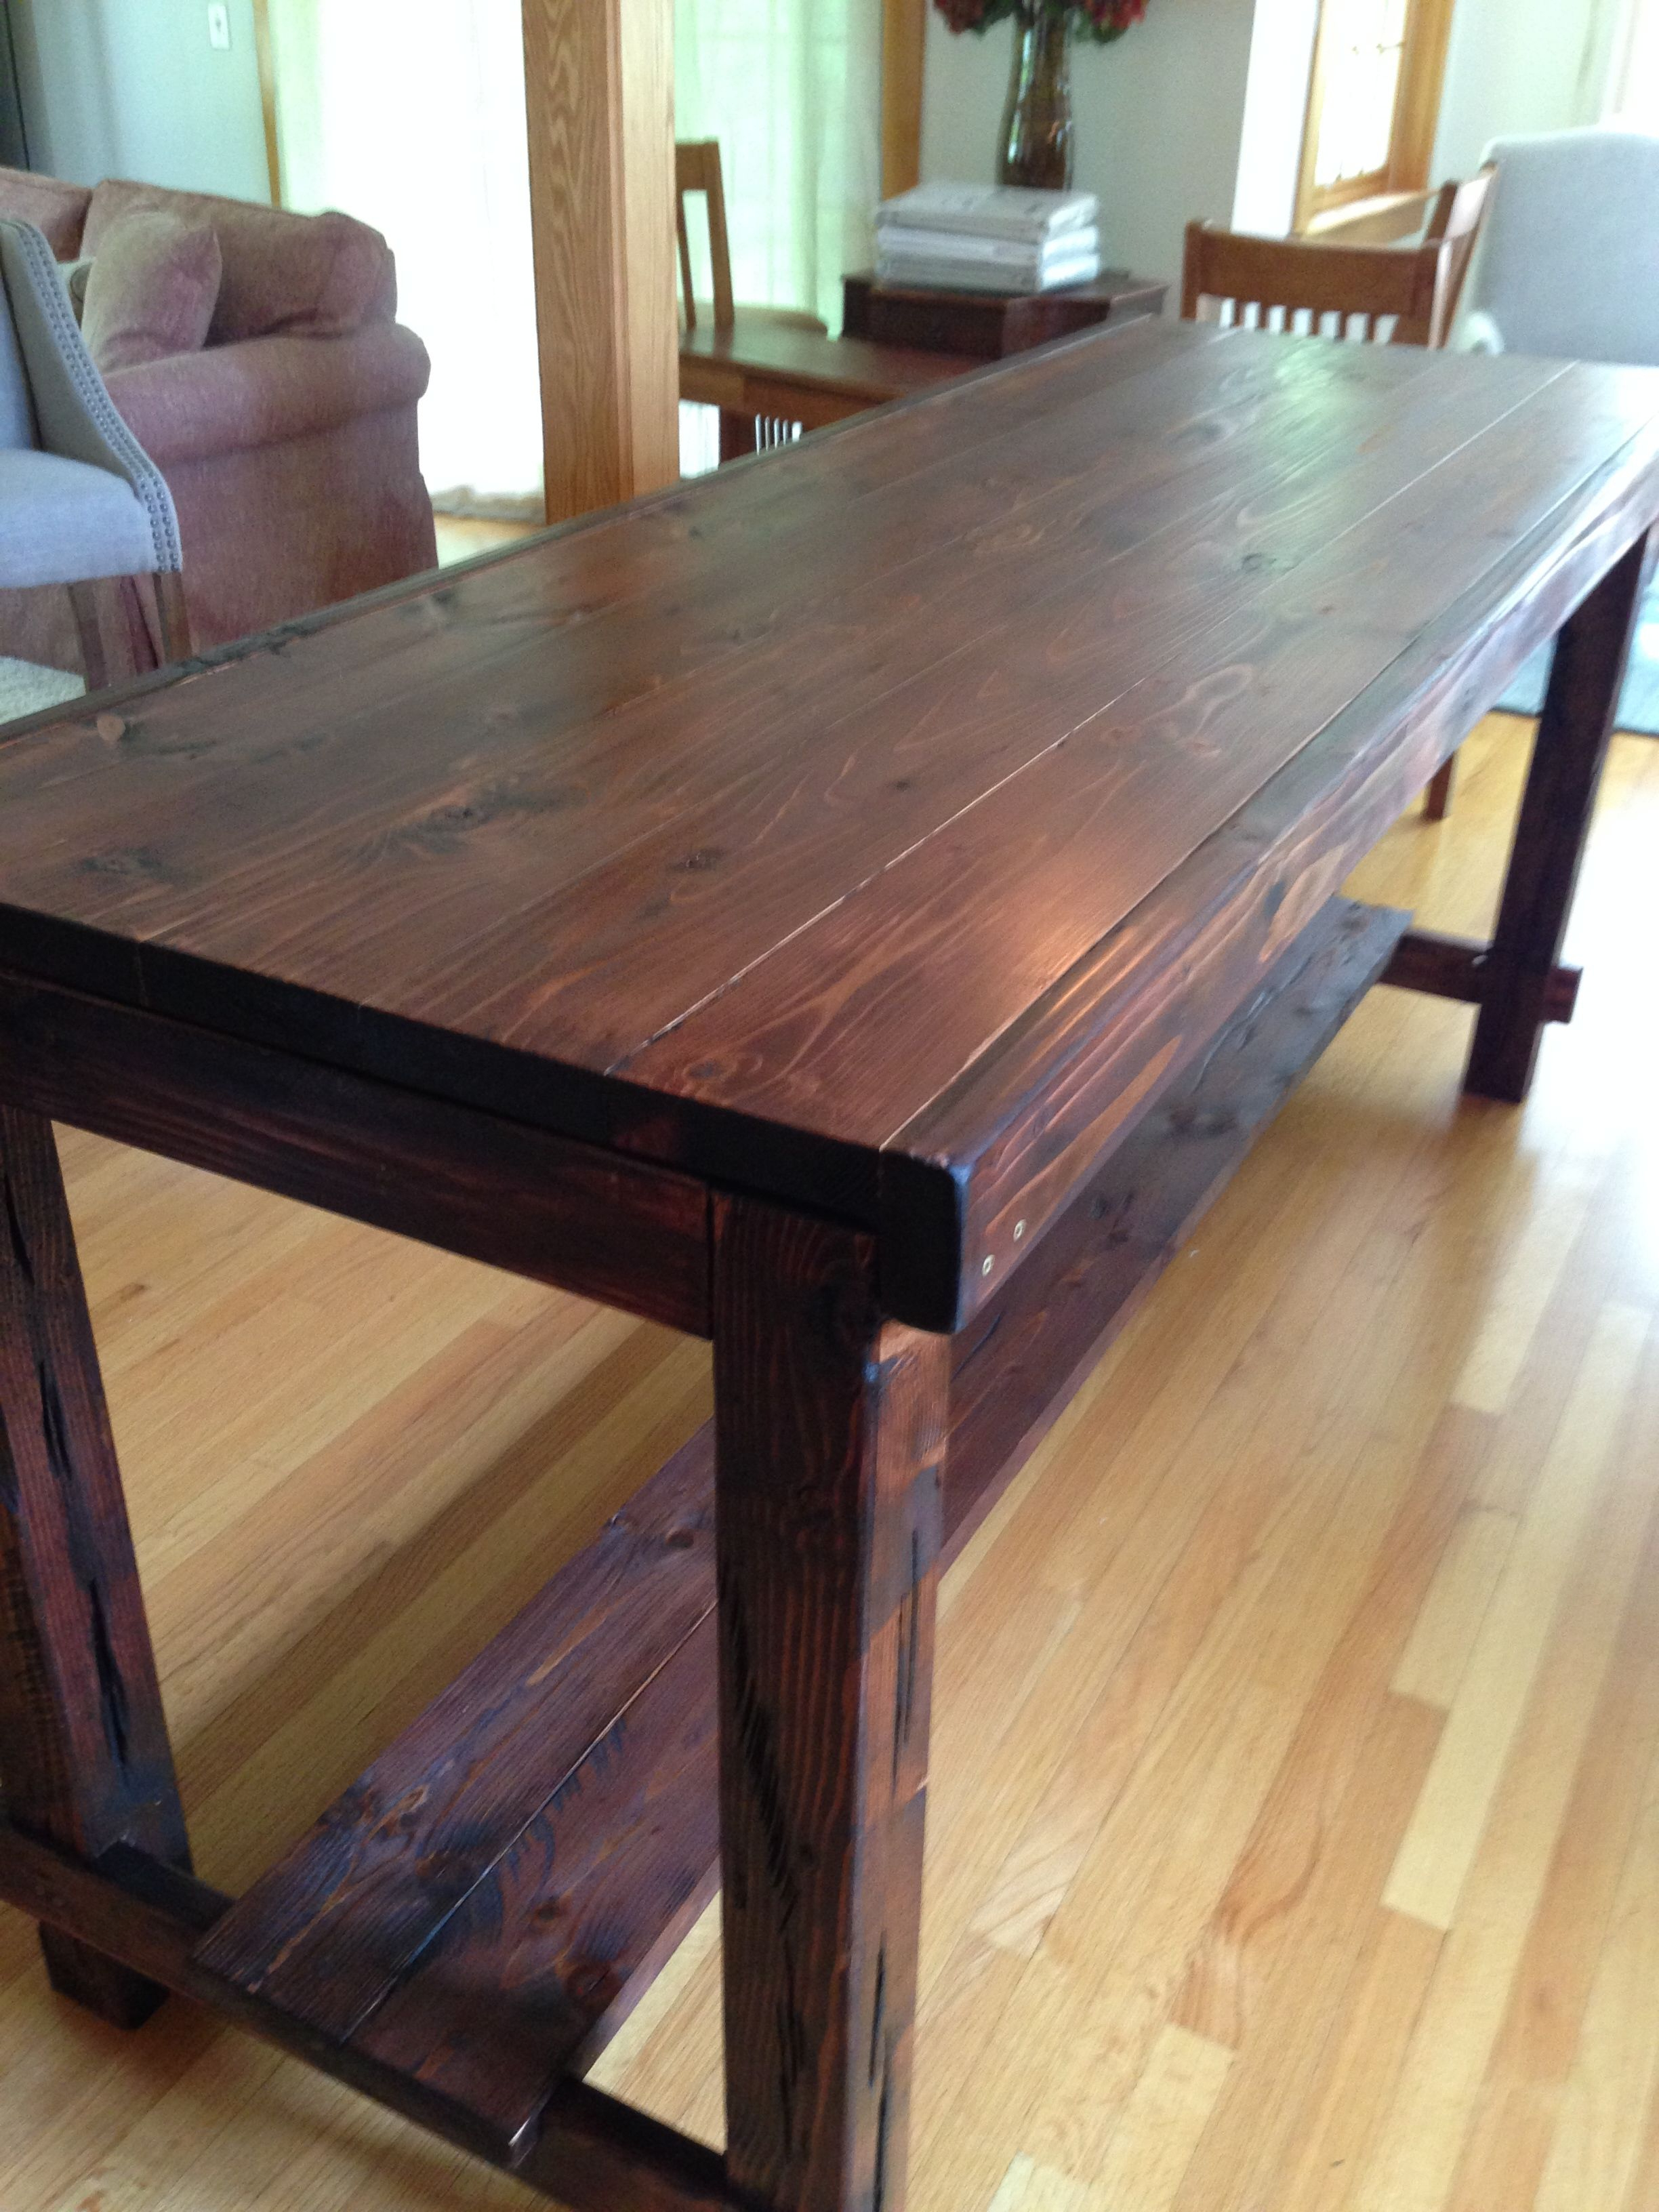 Newest Northwoods 3 Piece Dining Sets for Counter Height Farm Table In Custom Red Mahogany, Aged And